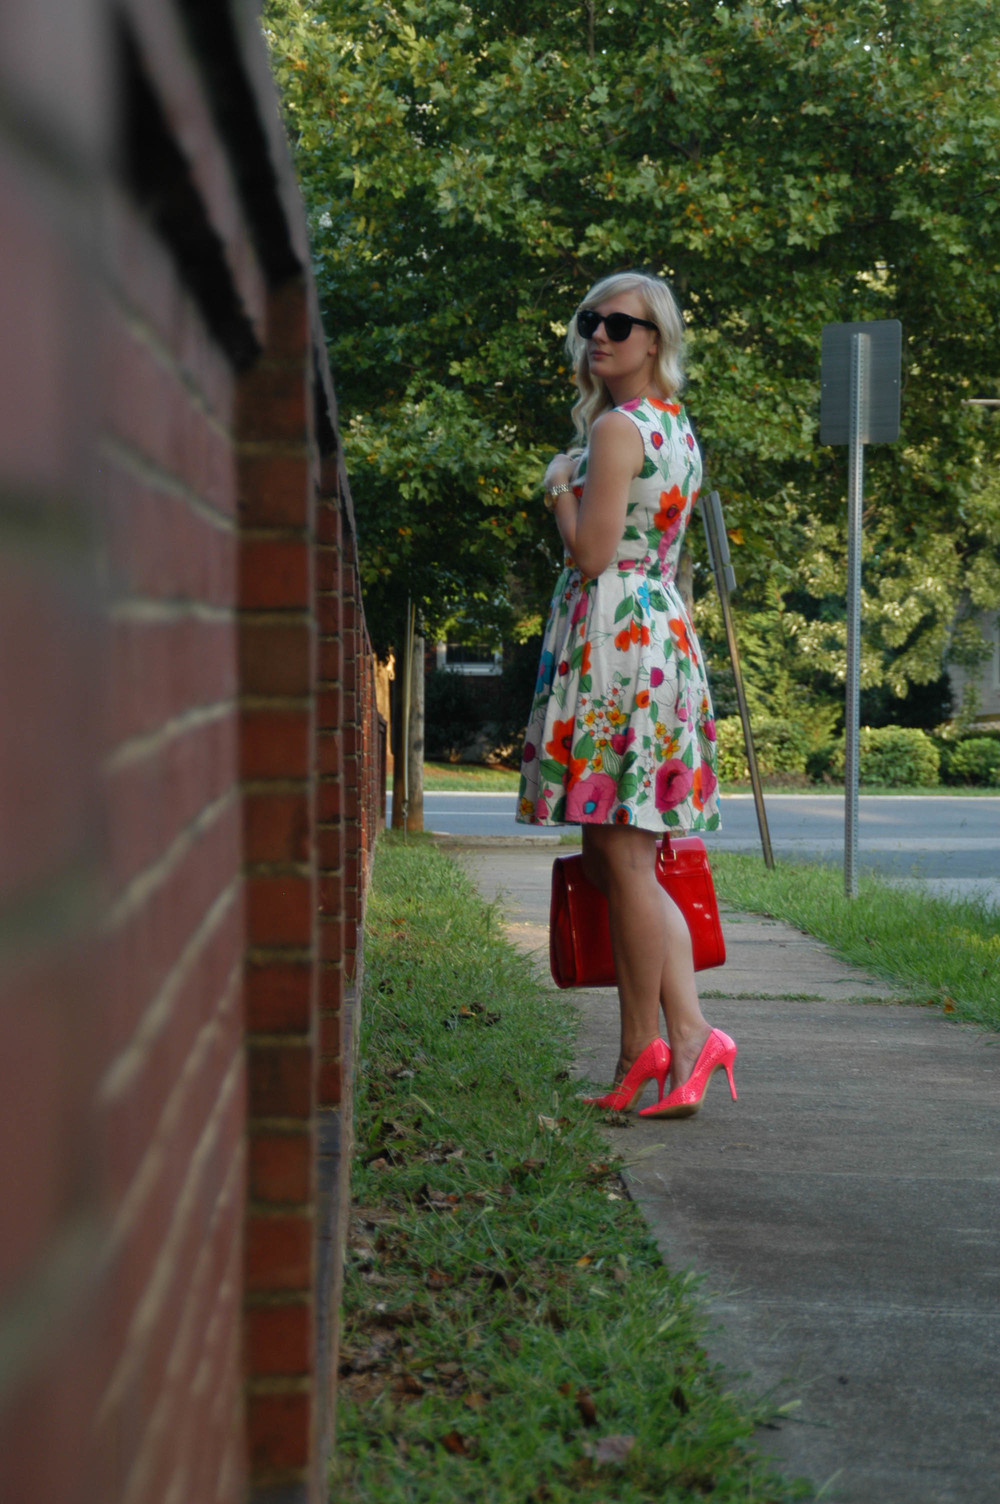 Dress: Handmade (Pattern: Cynthia Rowley #1873) | Shoes: ShoeDazzle | Purse: V&D (Europe) | Jewelry: H&M, Walmart | Glasses: Forever21